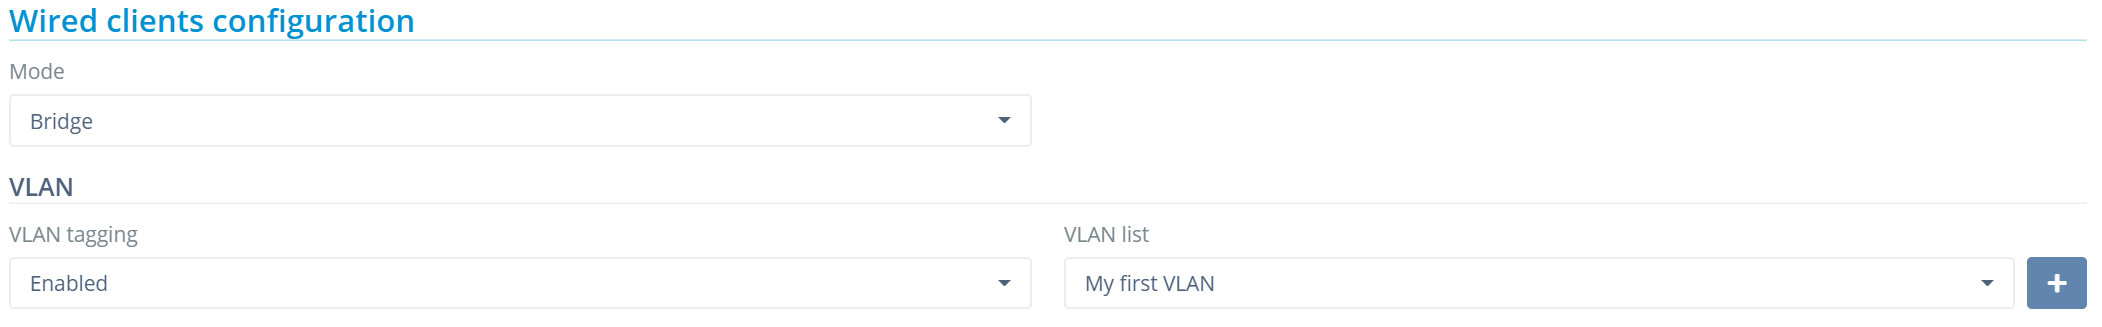 bridge-vlan-with-wired-clients.PNG